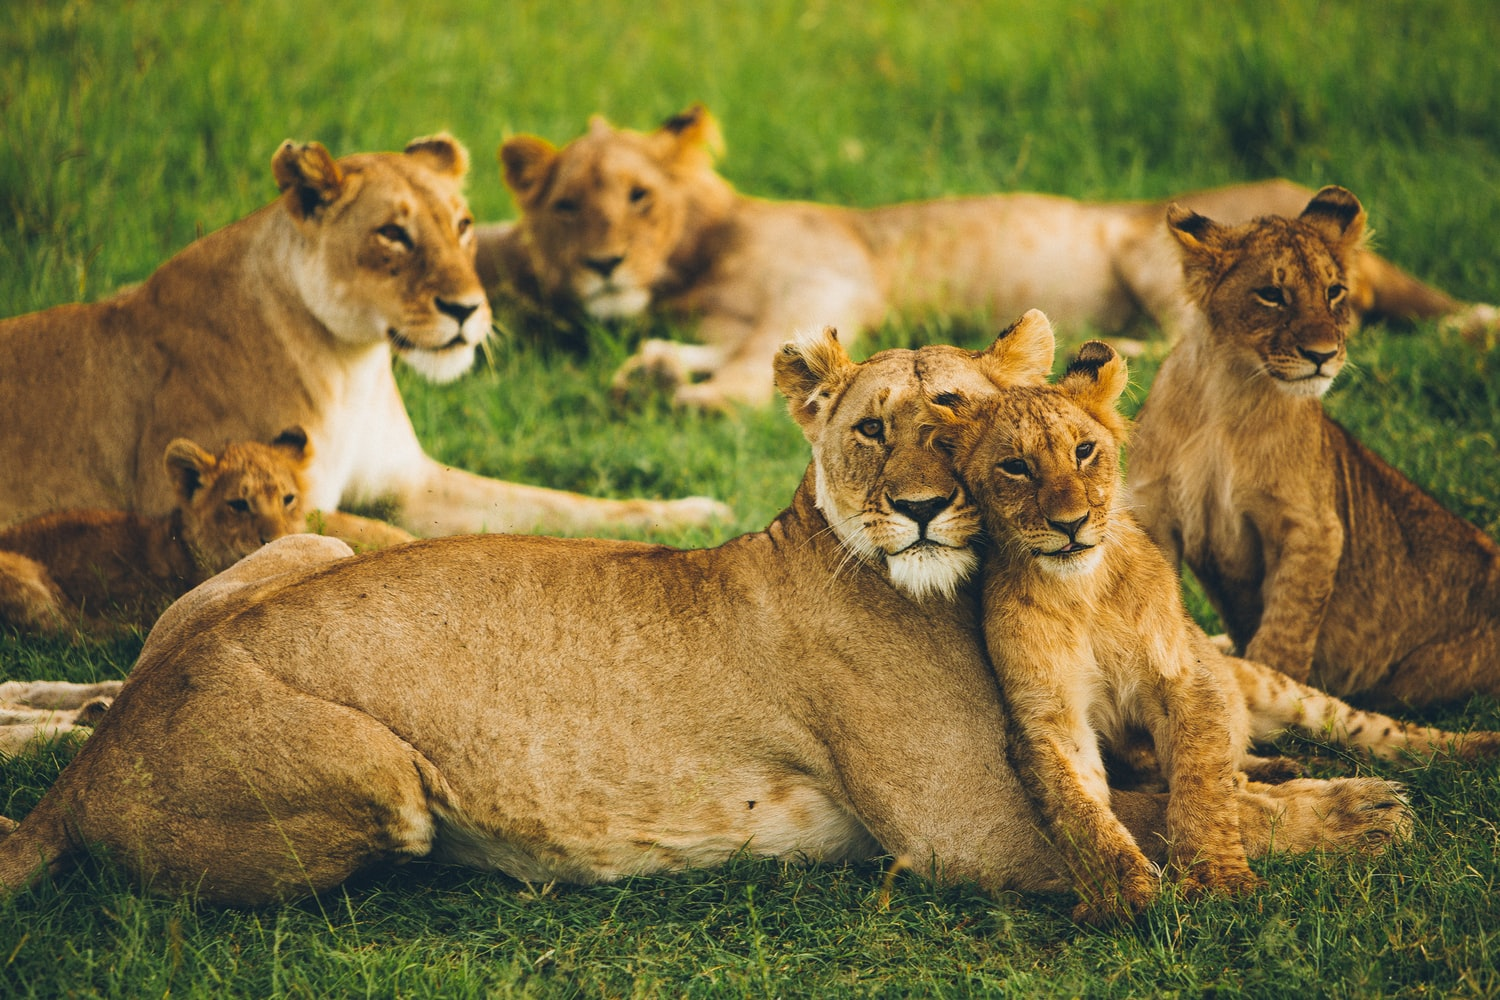 Lions in Zambia unter den Top 10 Safari Parks in Afrika